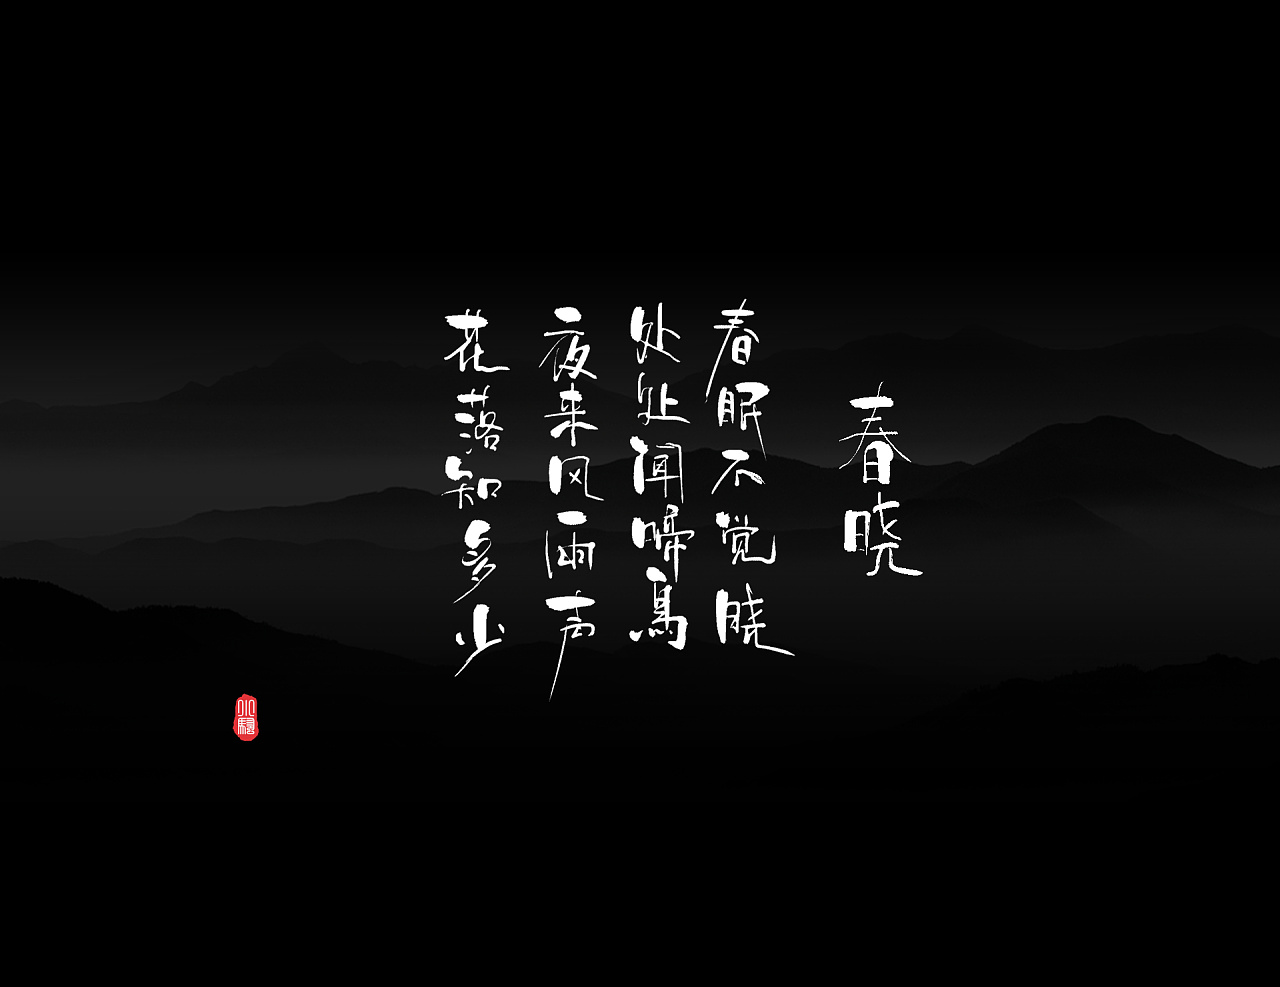 chinesefontdesign.com 2018 02 04 12 37 30 204474 50P Li Sao of Tang Song style Chinese Design Inspiration